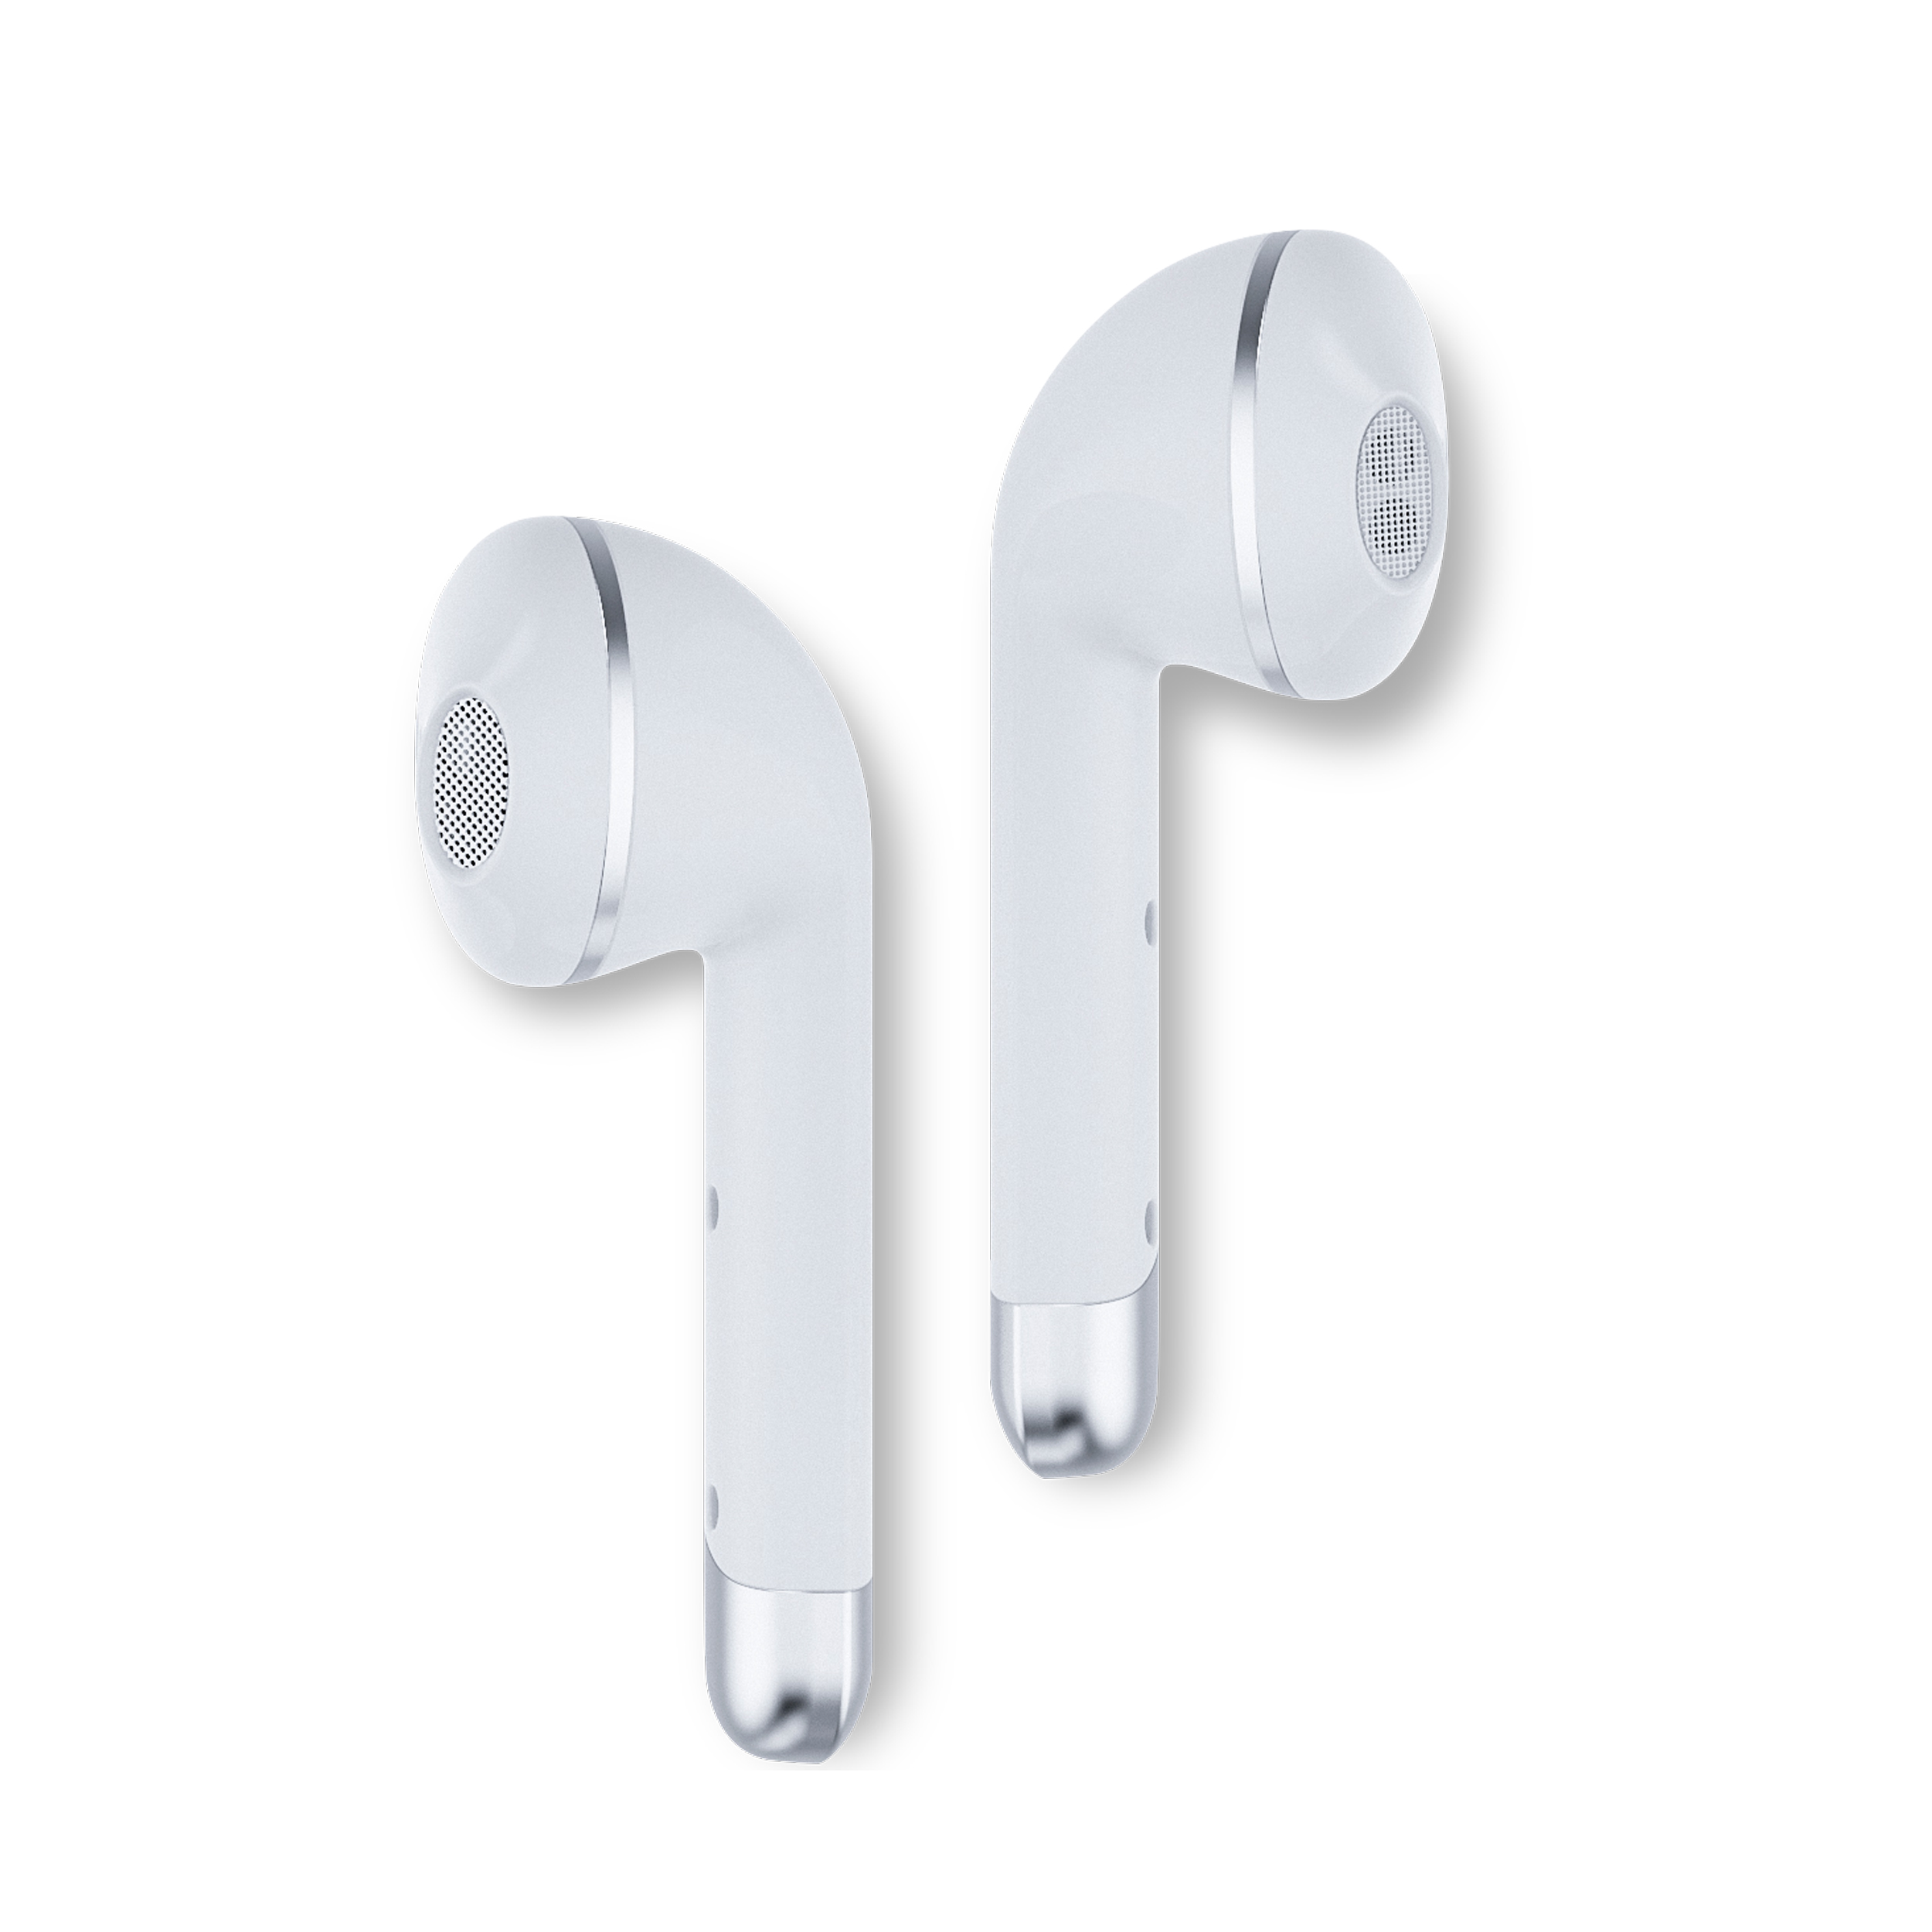 Happy plugs Air 1 with touch controls -  Bluetooth 5.0 connectivity - 10m wireless range - Up to 14h of battery life